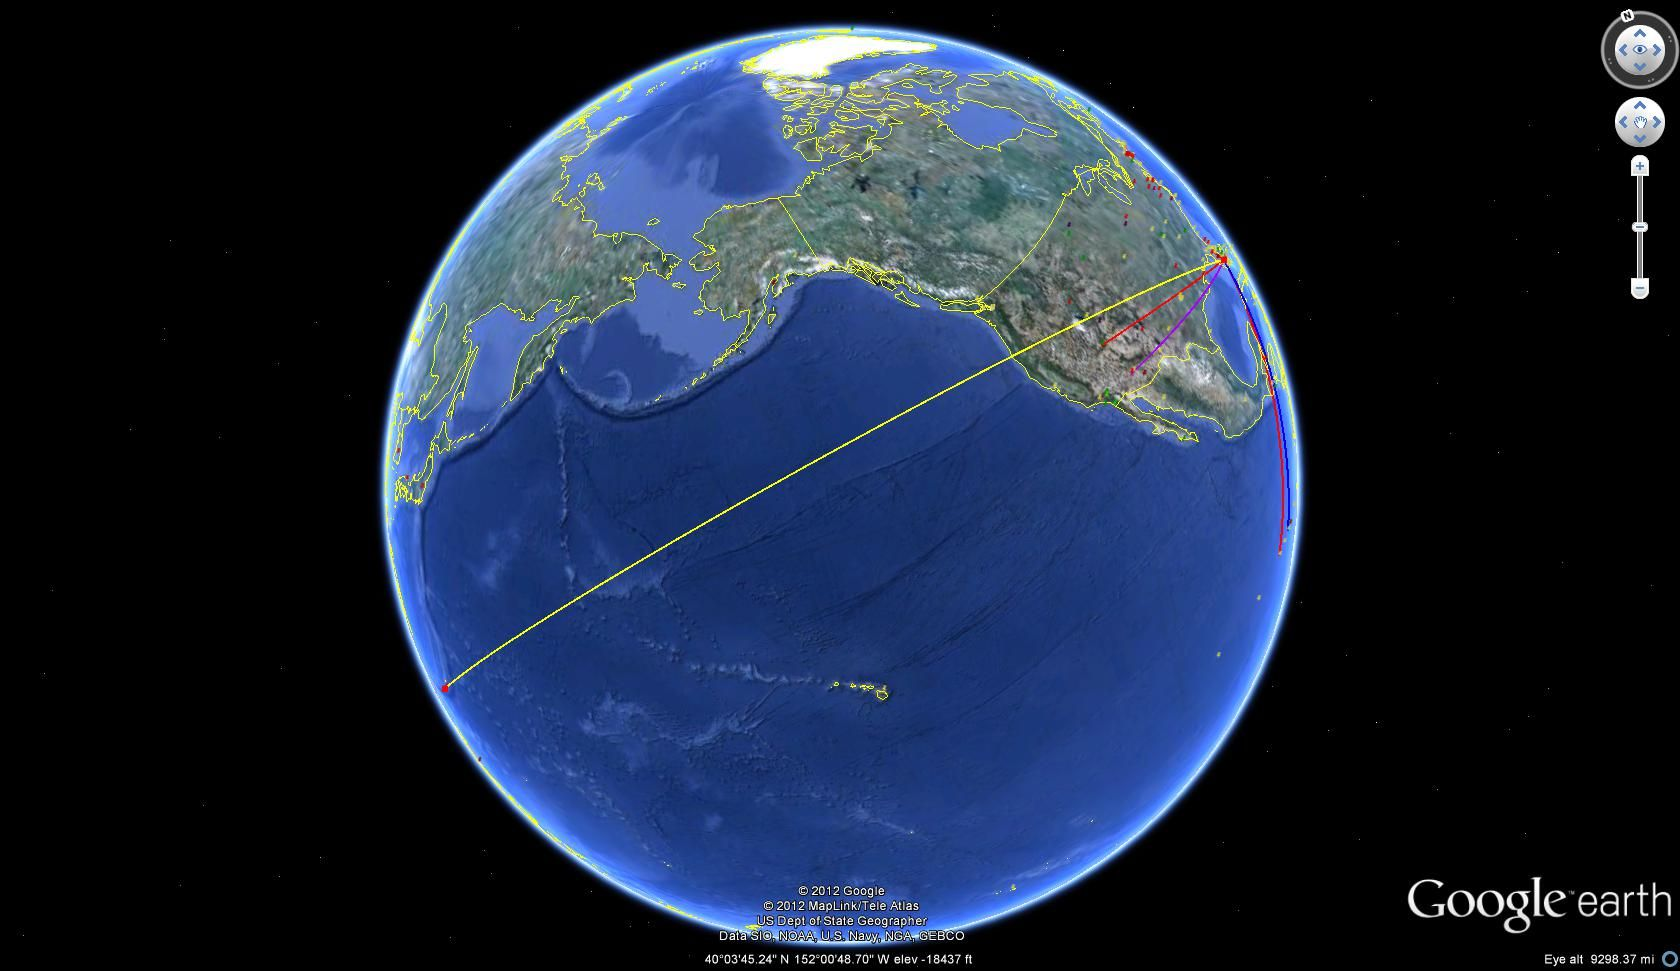 Google Earth Live See Satellite View Of Your House Fly Directly - World satellite view live